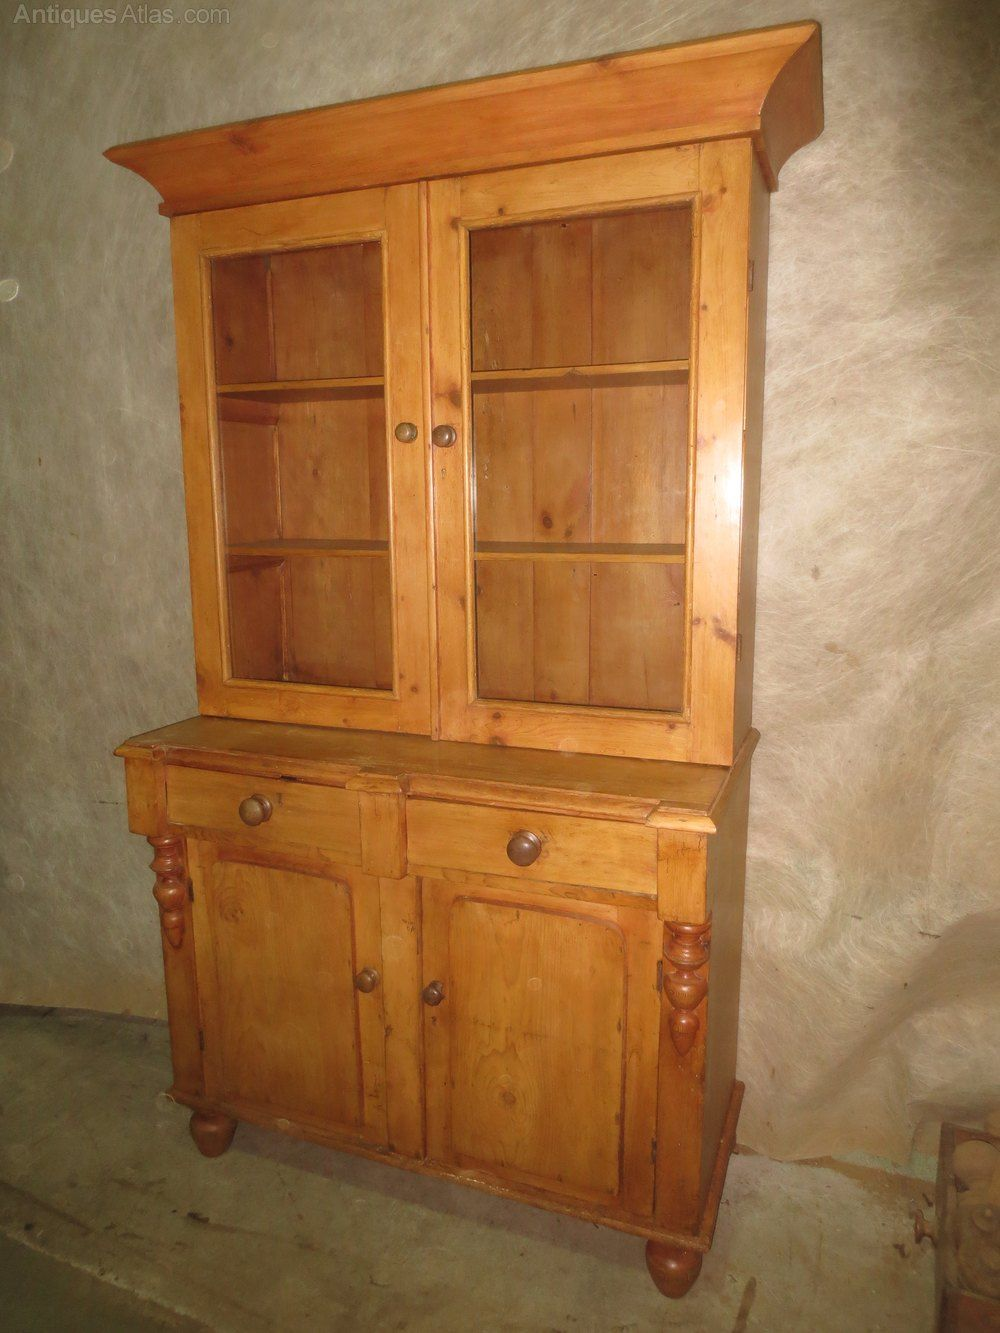 Antiques Atlas Antique Pine Furniture